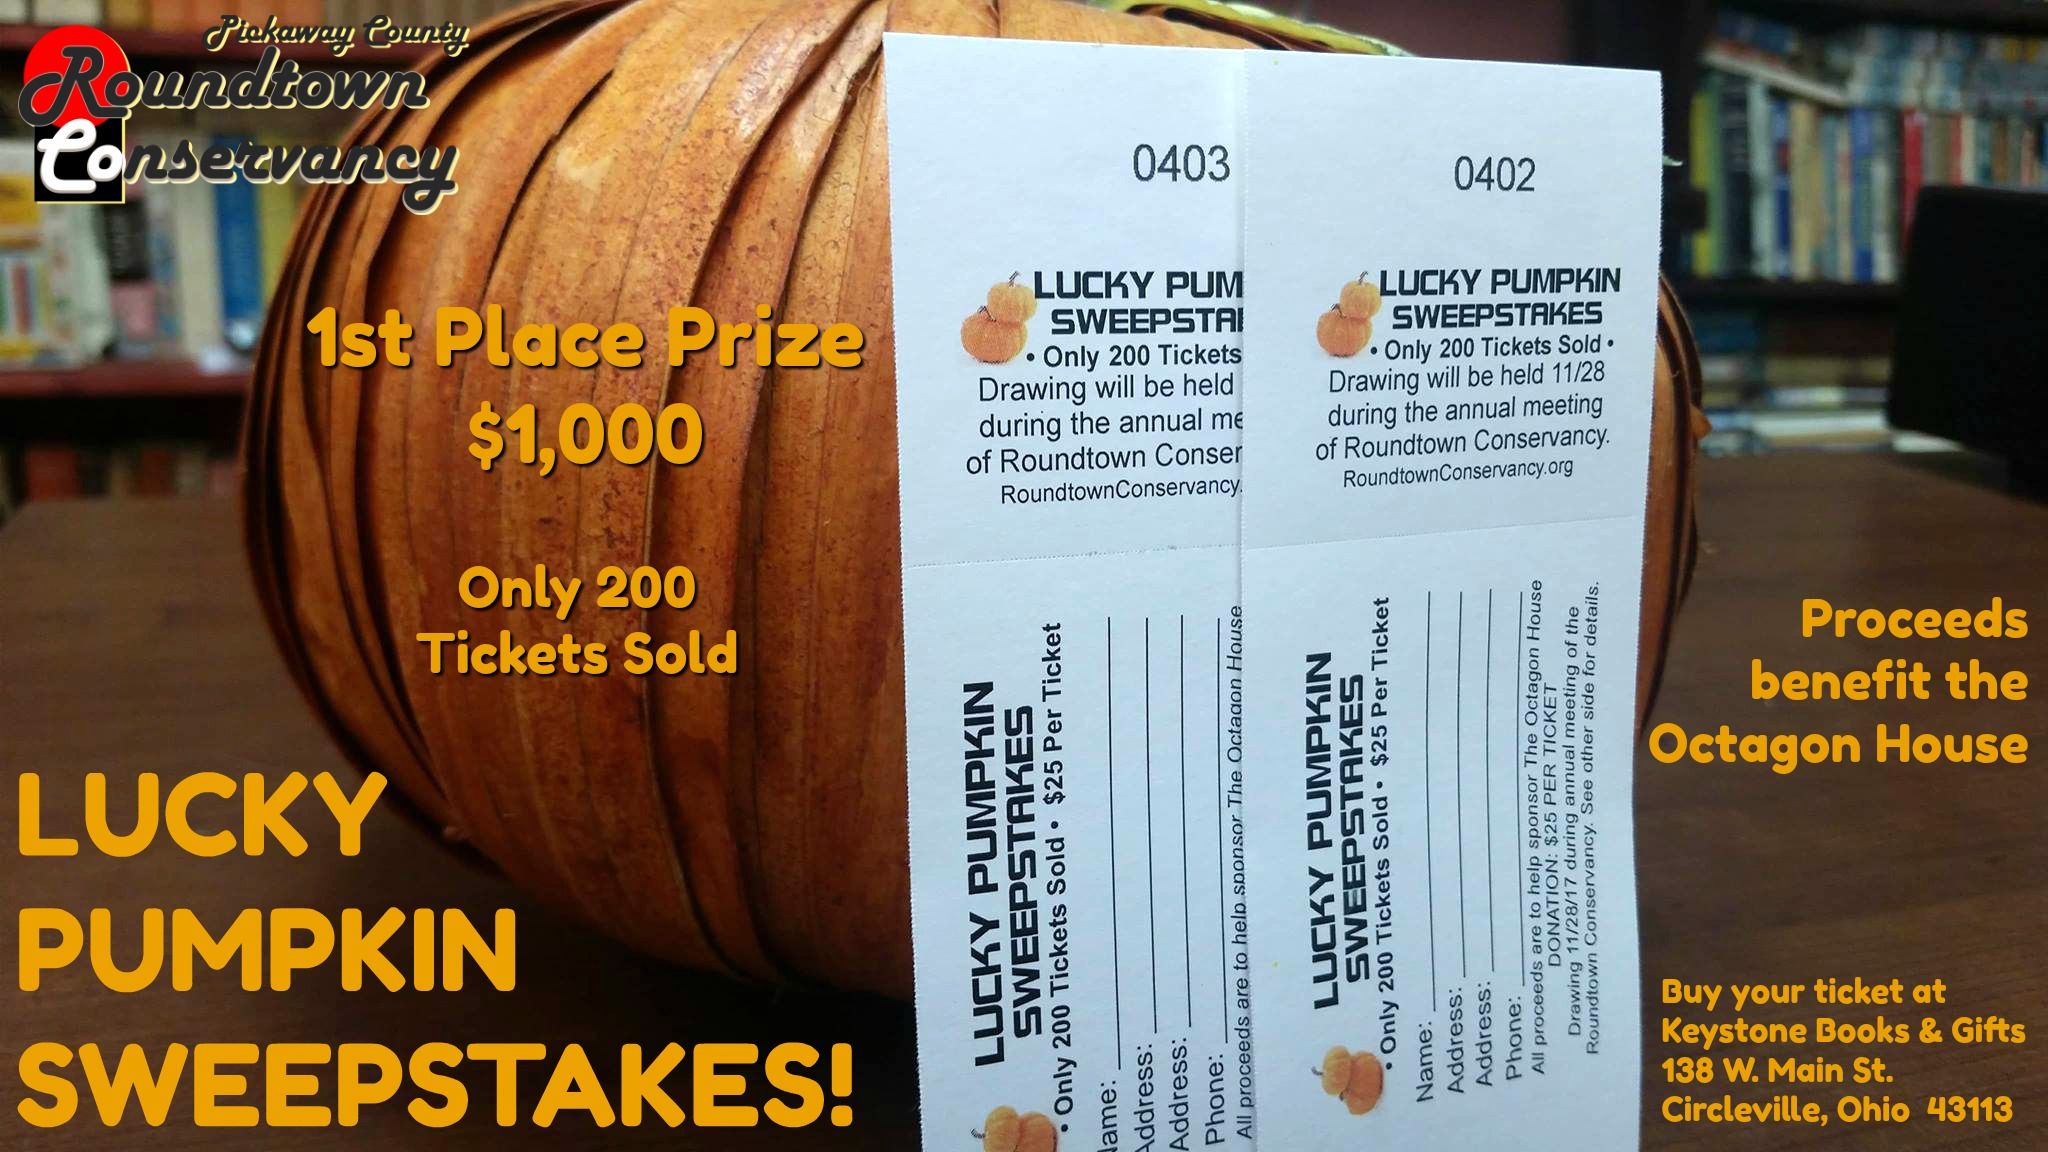 Lucky Pumpkin Sweepstakes